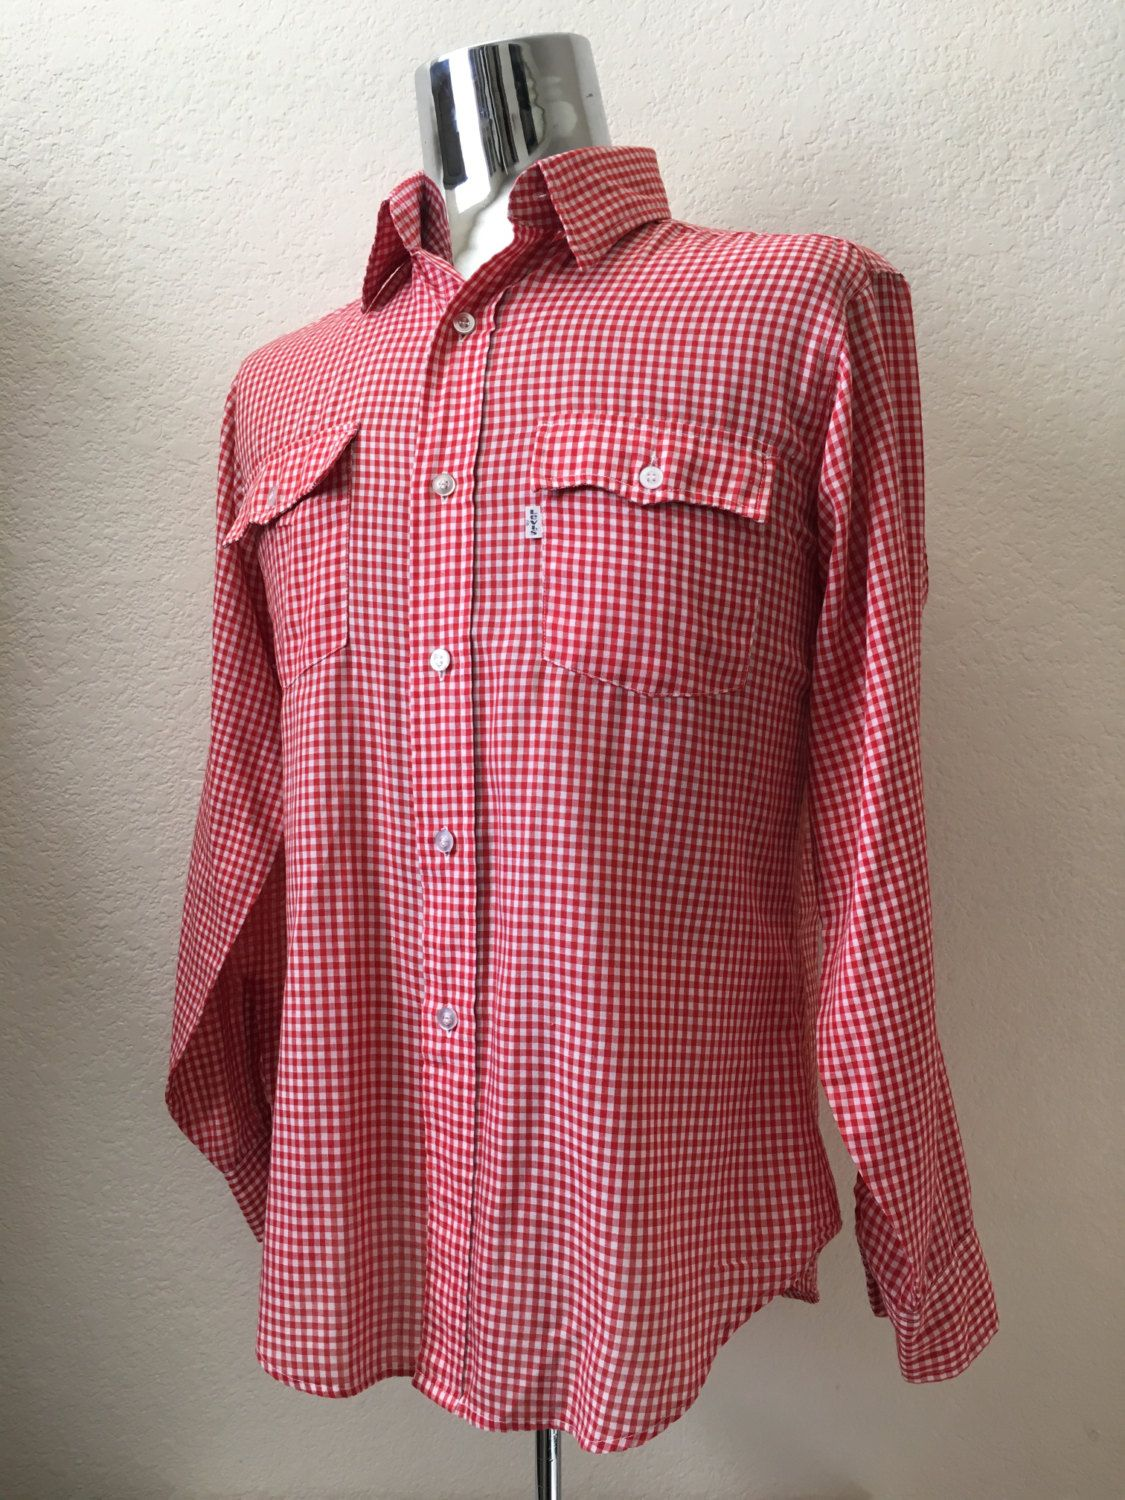 ad0ec36532321 Vintage Men's 70's Levi's Shirt, Red, White, Checkered, Long Sleeve, Button  Up (L) by Freshandswanky on Etsy